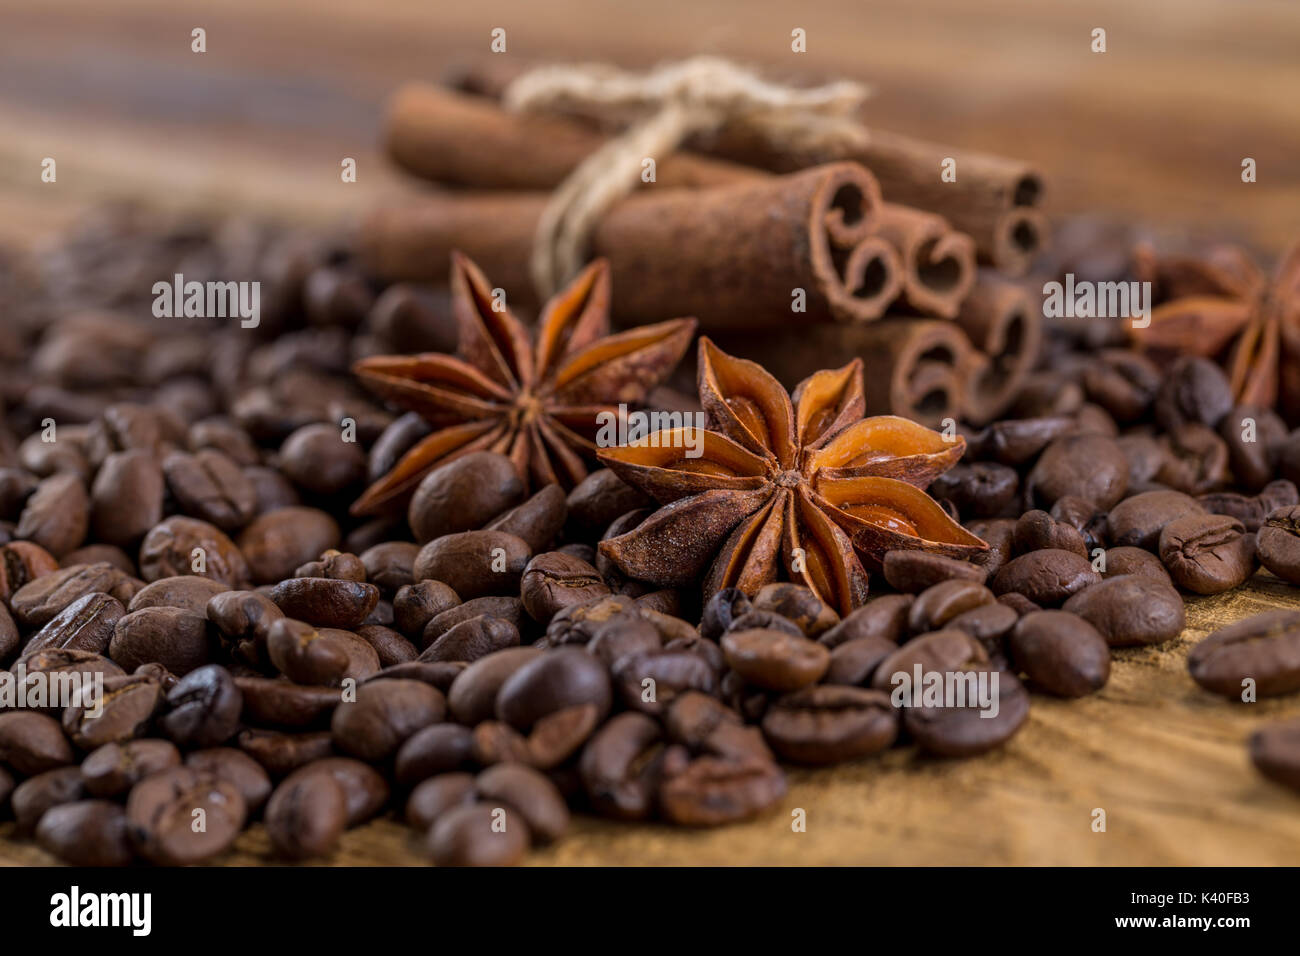 Coffee grains, anise and canella on old planks - Stock Image